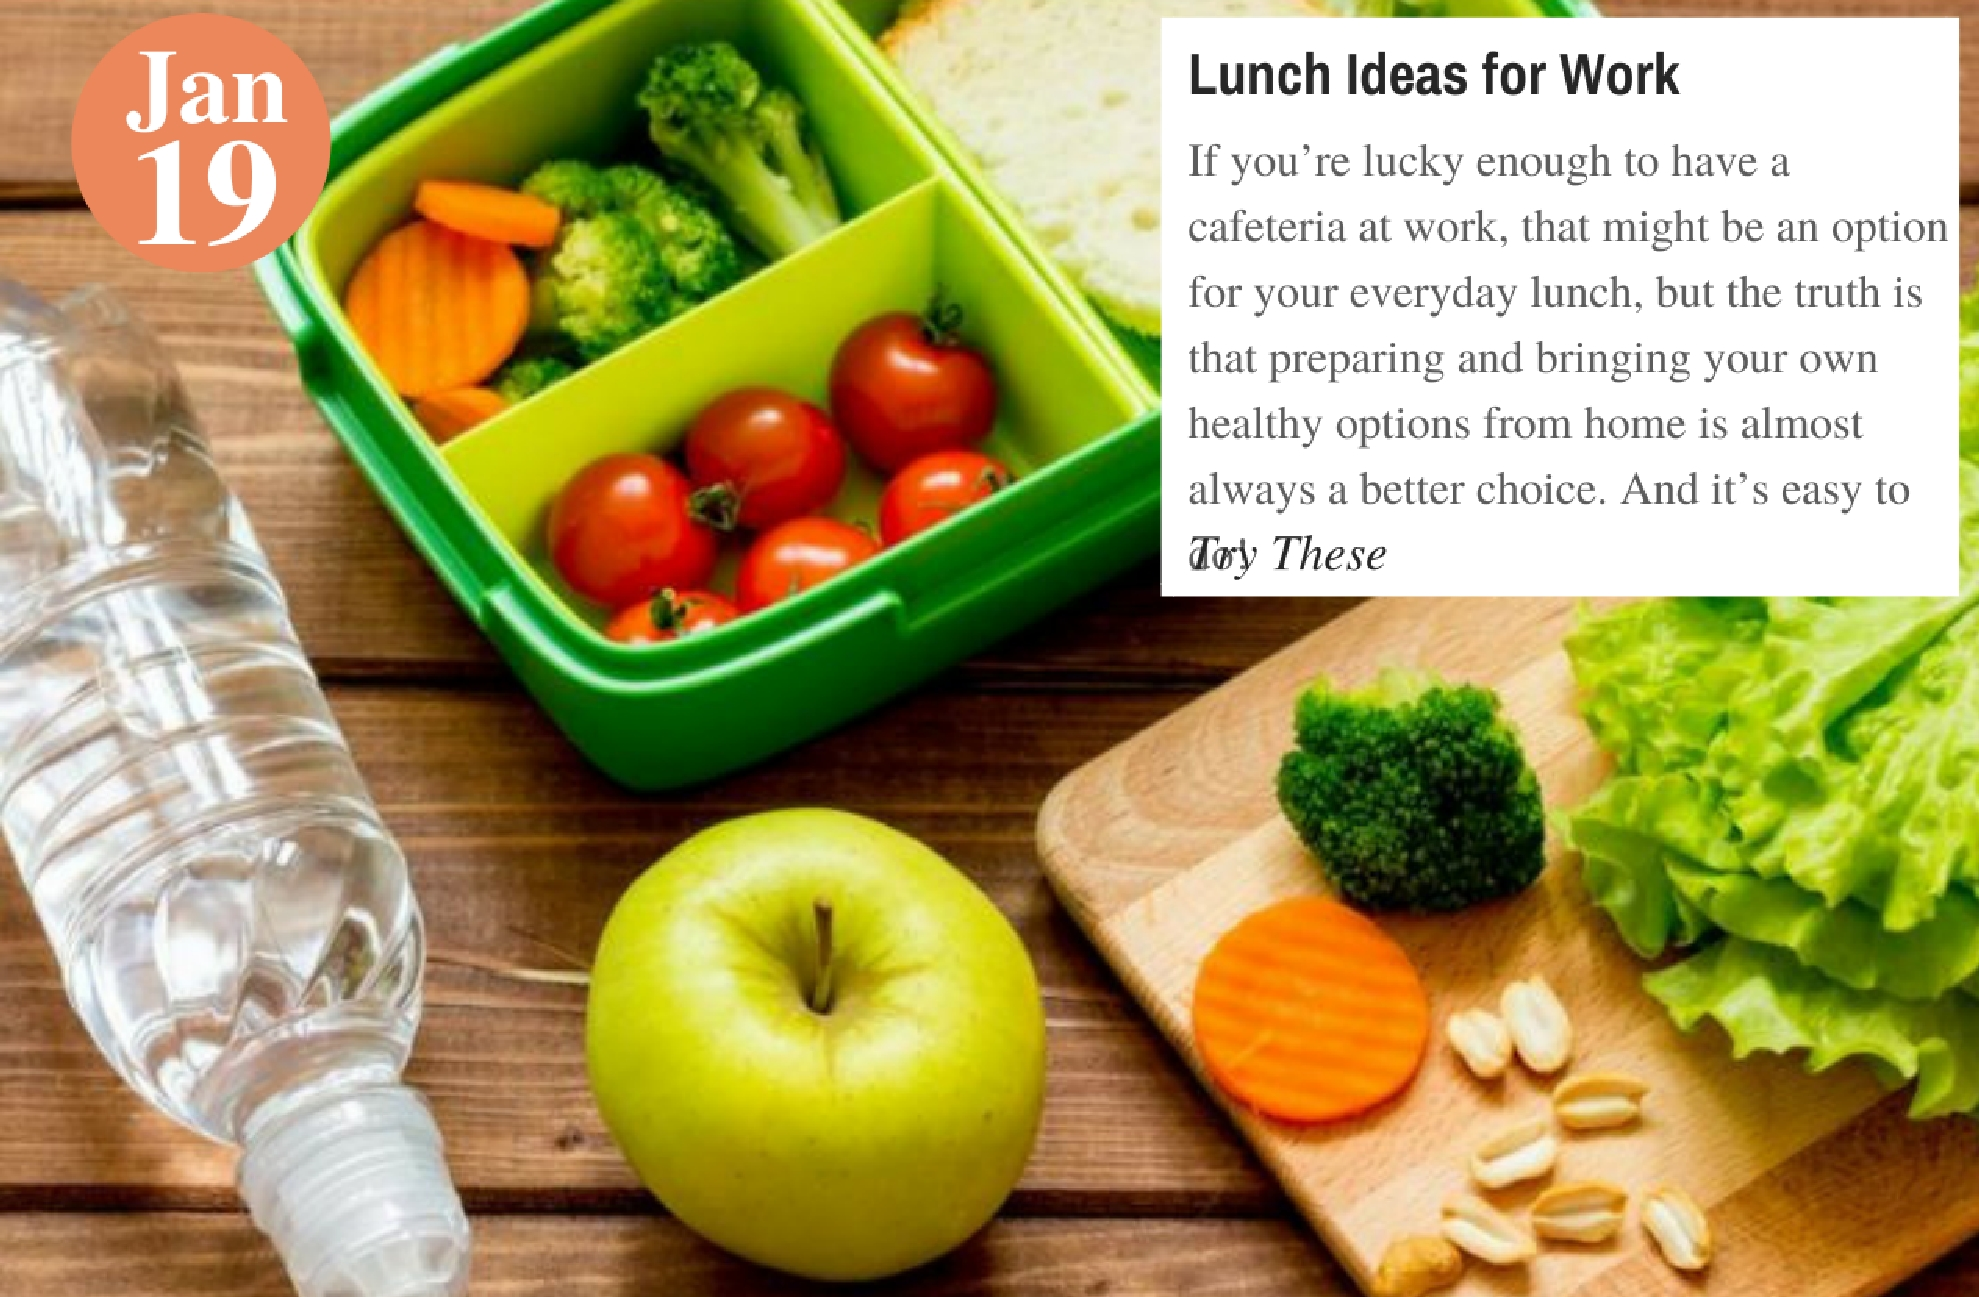 Lunch Ideas for Work (1)